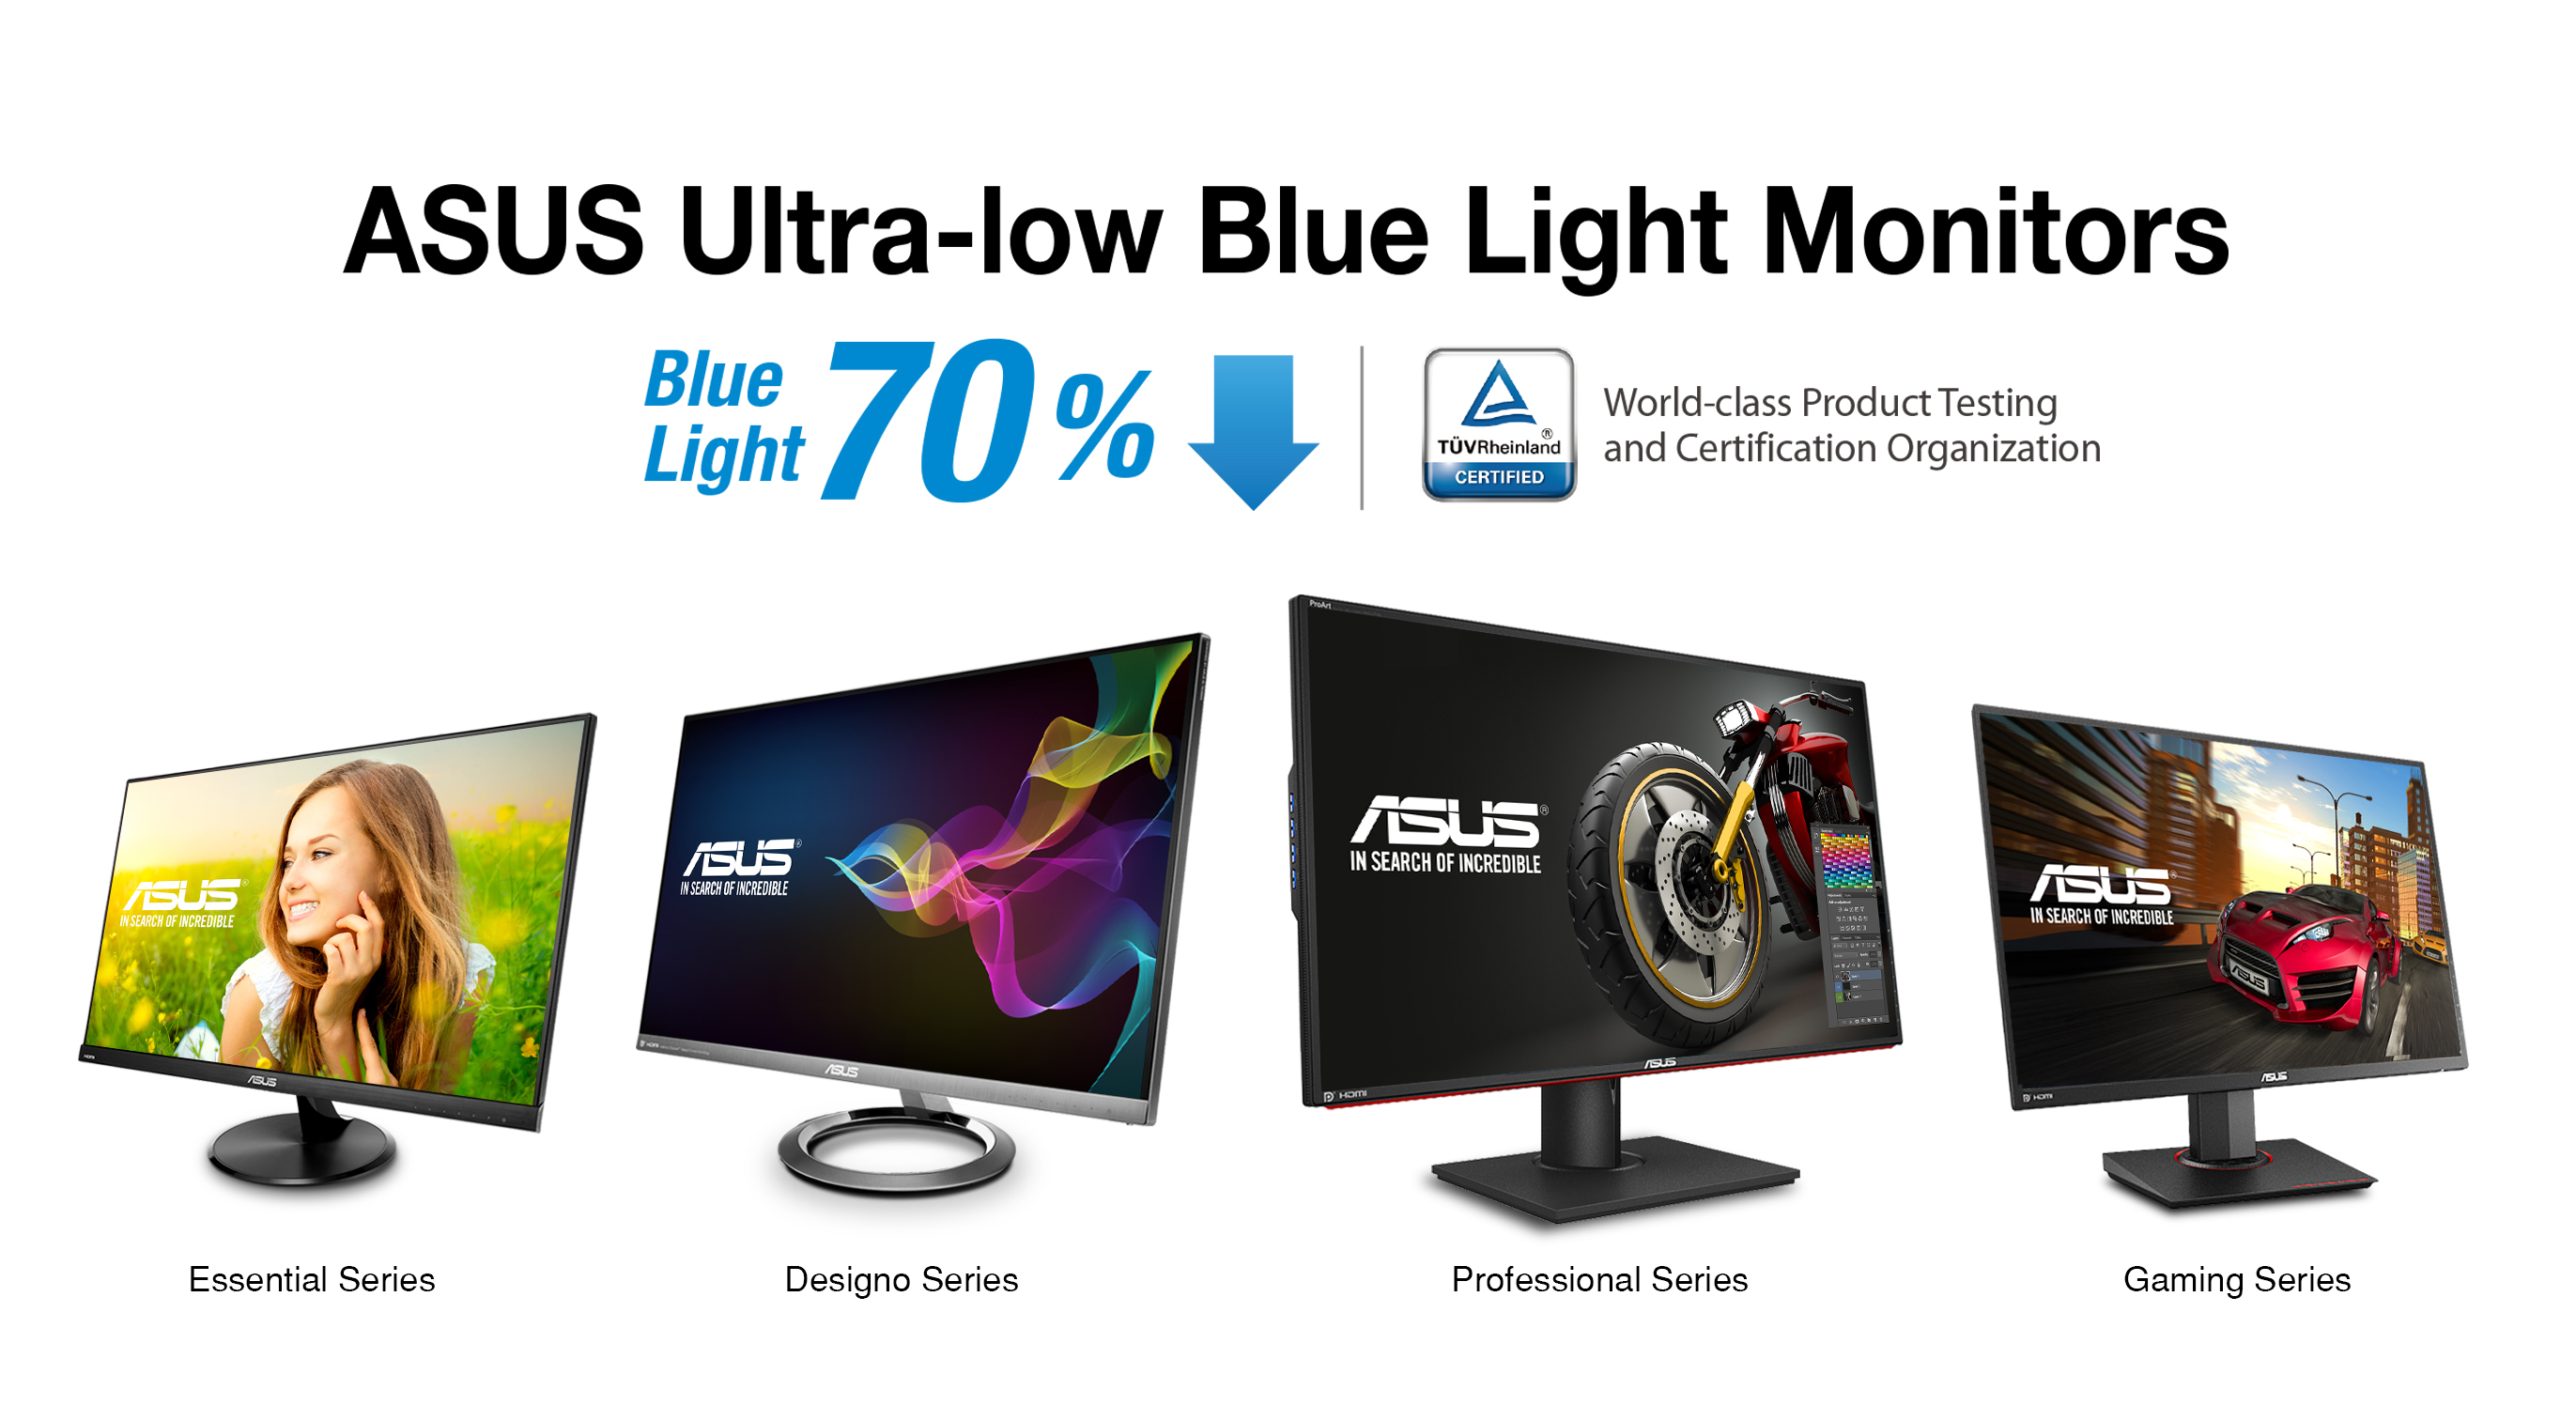 ASUS-Ultra-Low-Blue-Light-Monitors-Receive-Most-Number-of-TÜV-Rheinland-Certifications-PR-image